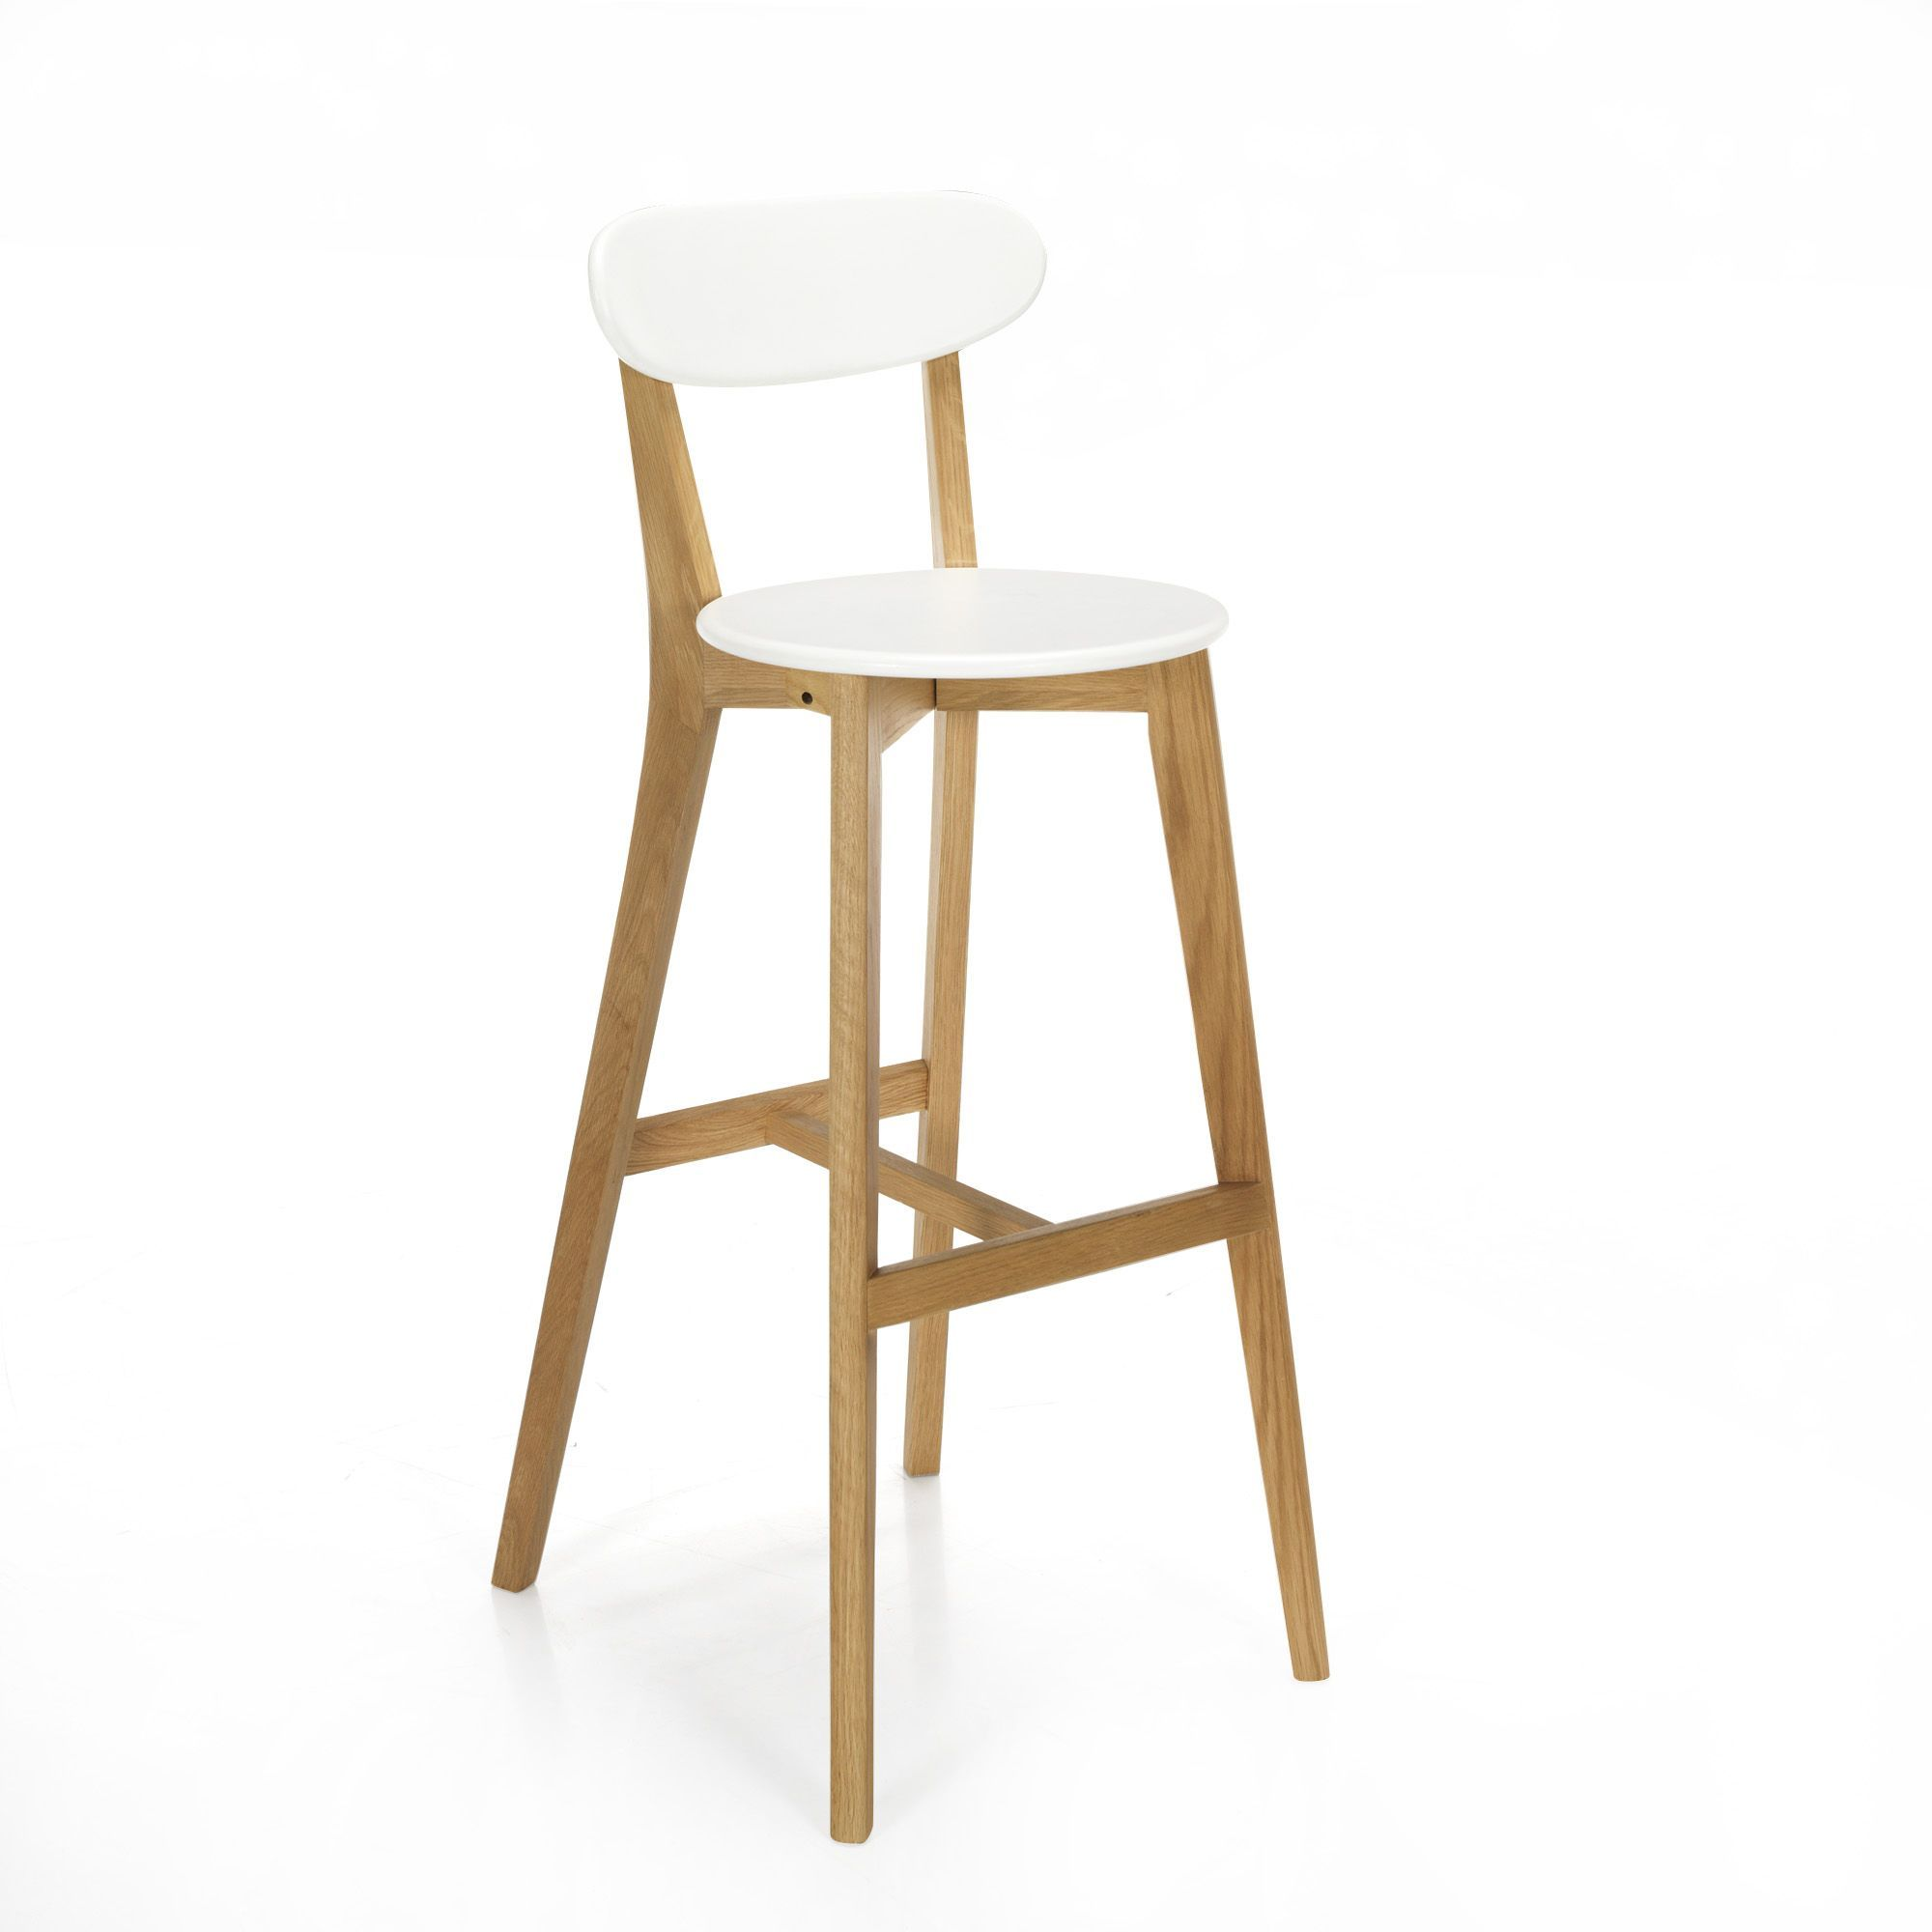 Mateo bain bar design and tables - Ikea table et chaise ...